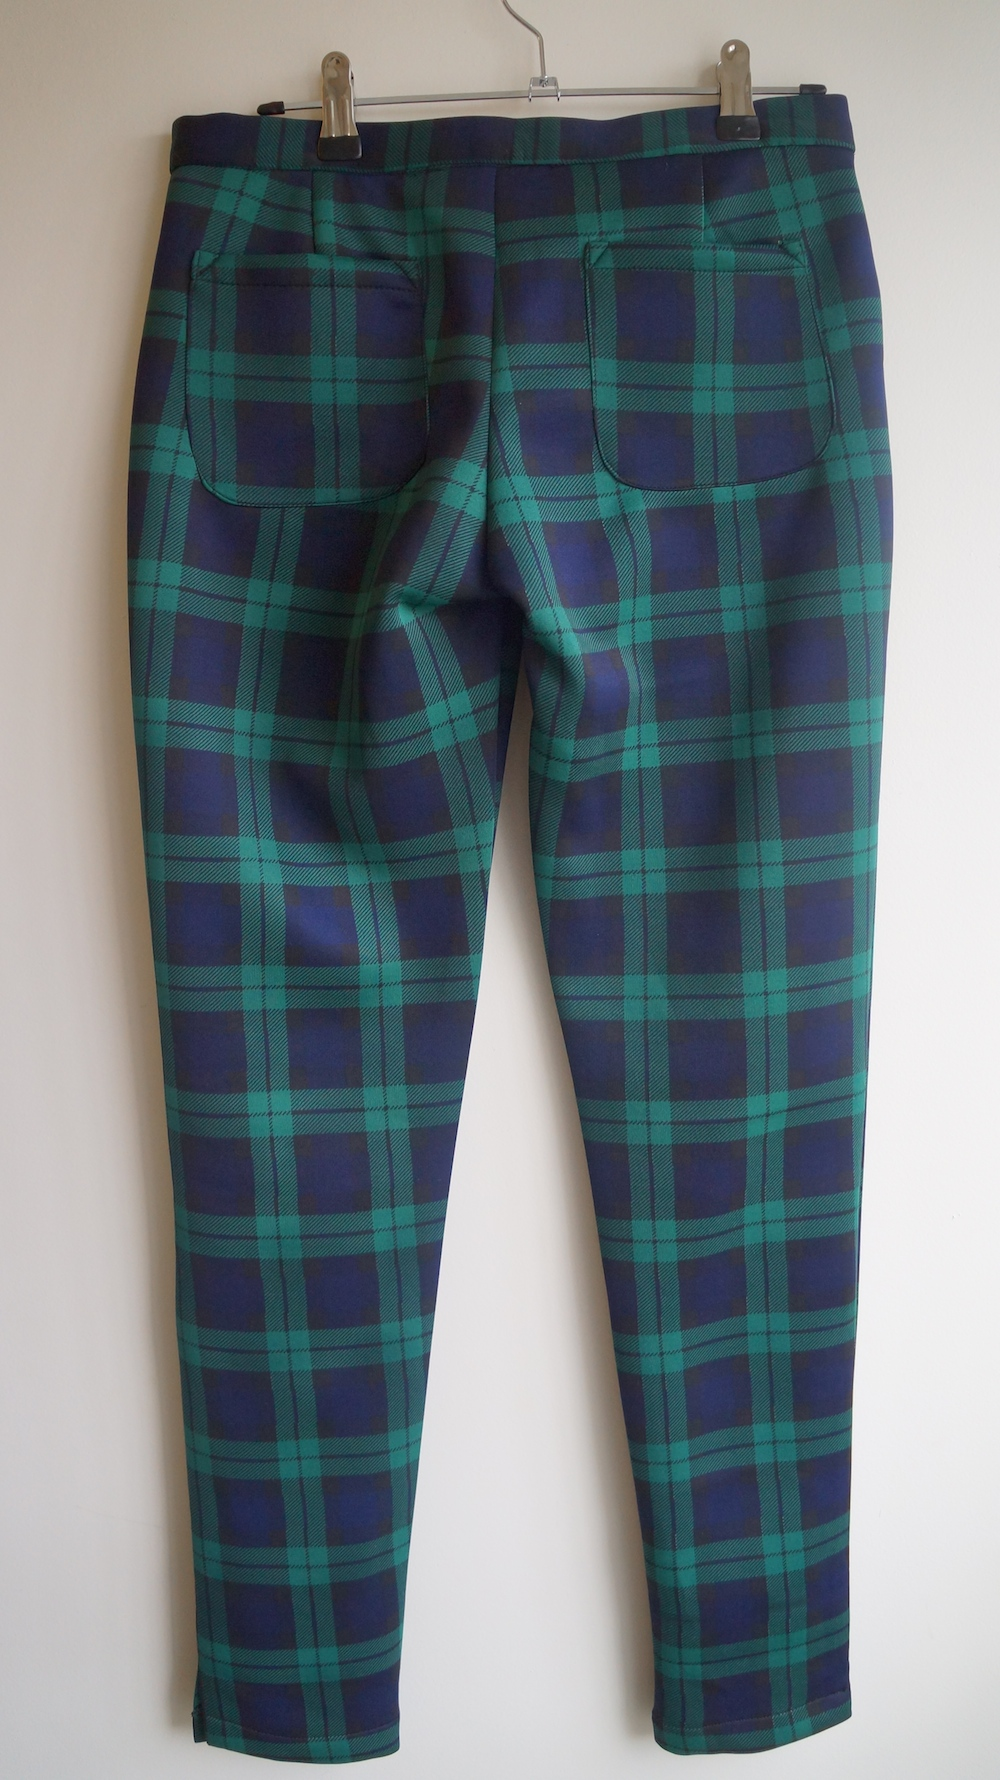 Find great deals on eBay for green plaid pants. Shop with confidence.